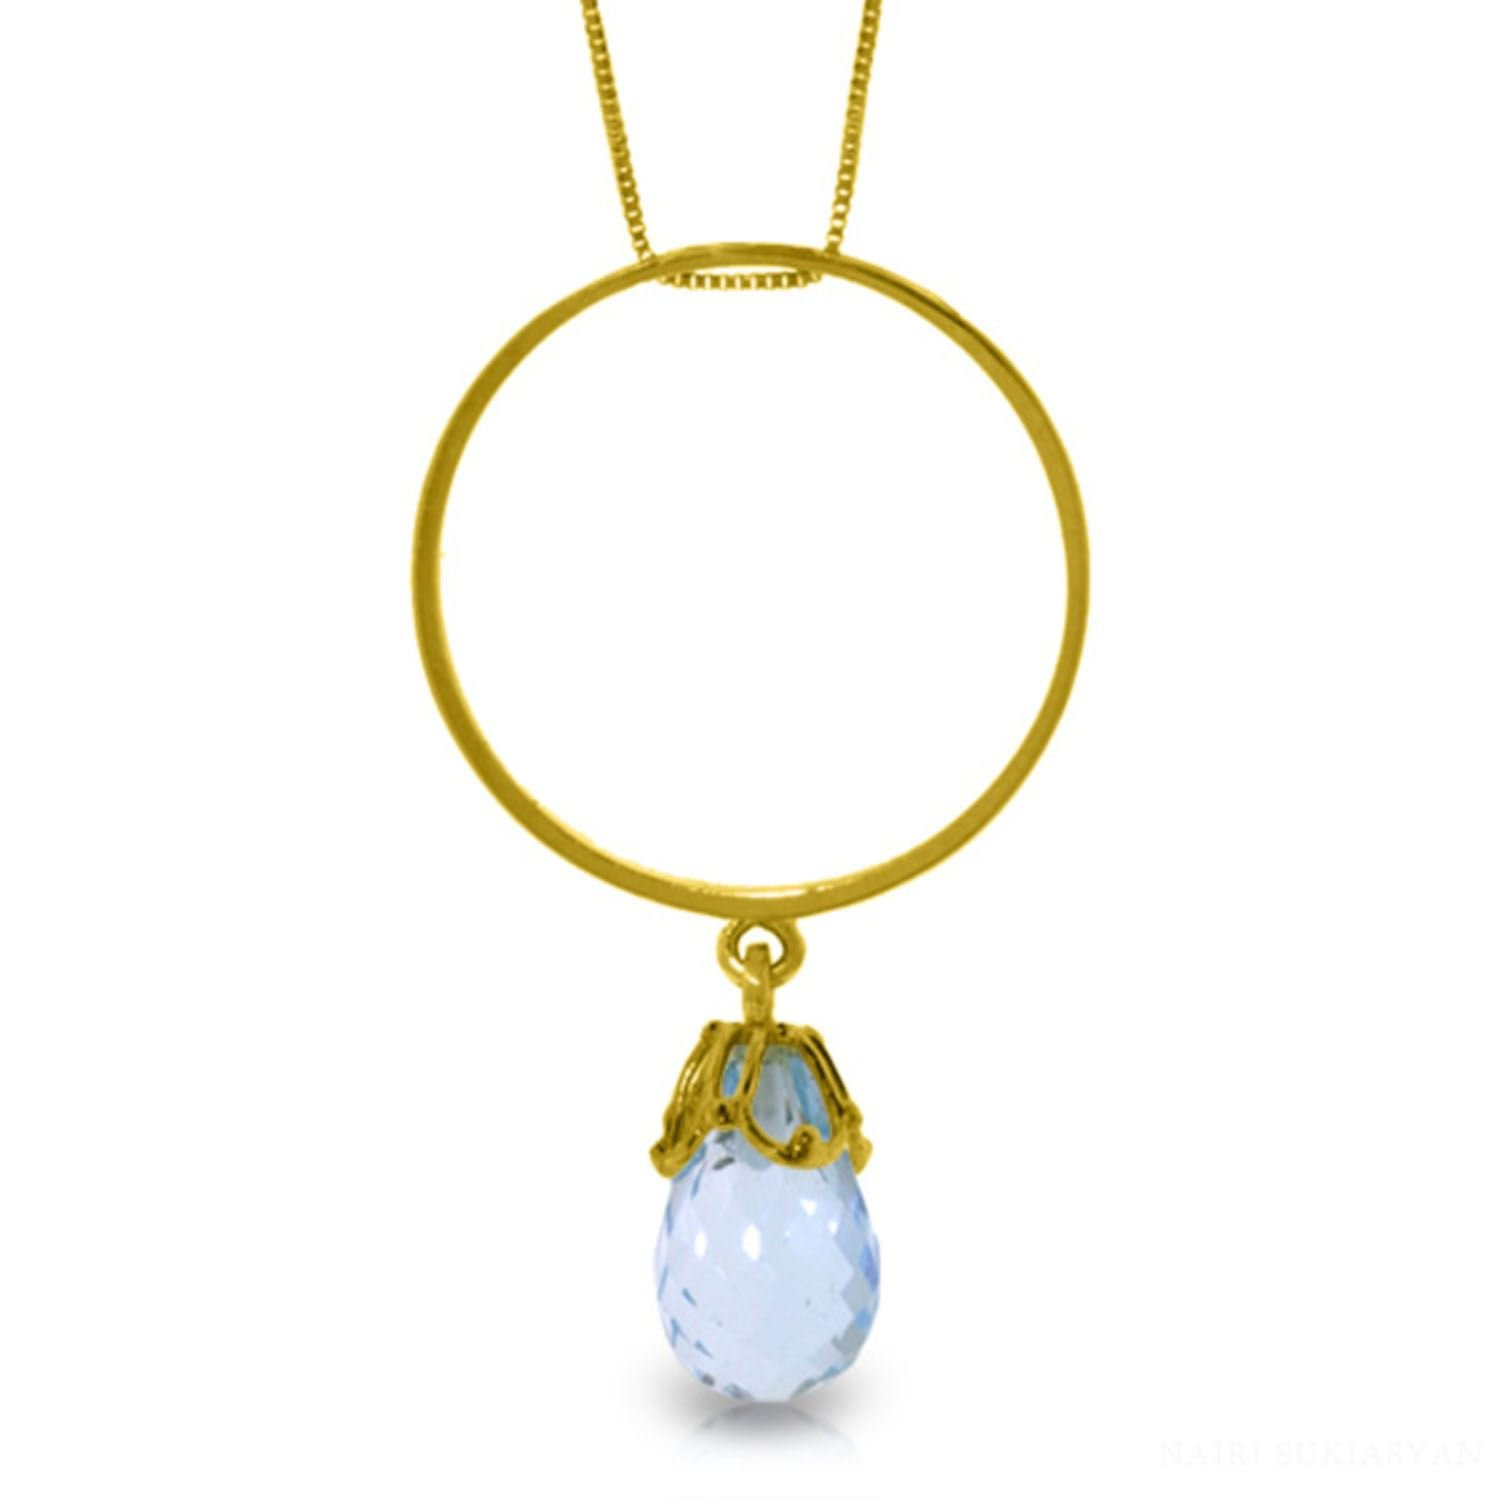 ALARRI 3 CTW 14K Solid Gold Ragazza Blue Topaz Necklace with 20 Inch Chain Length